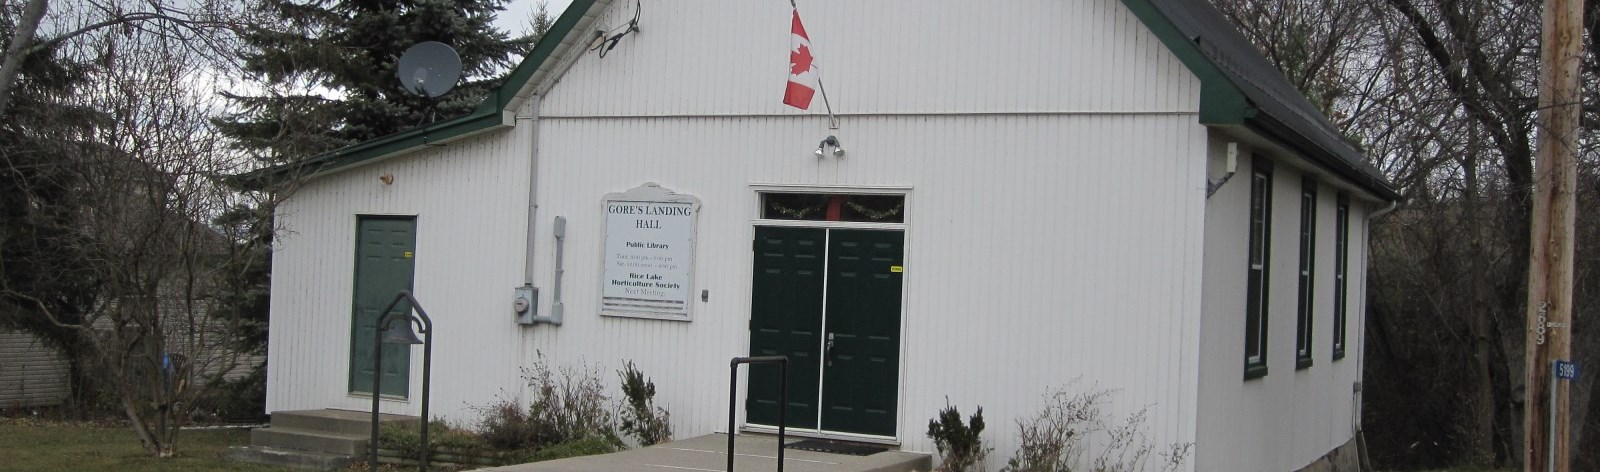 Front of the Gore's Landing Library